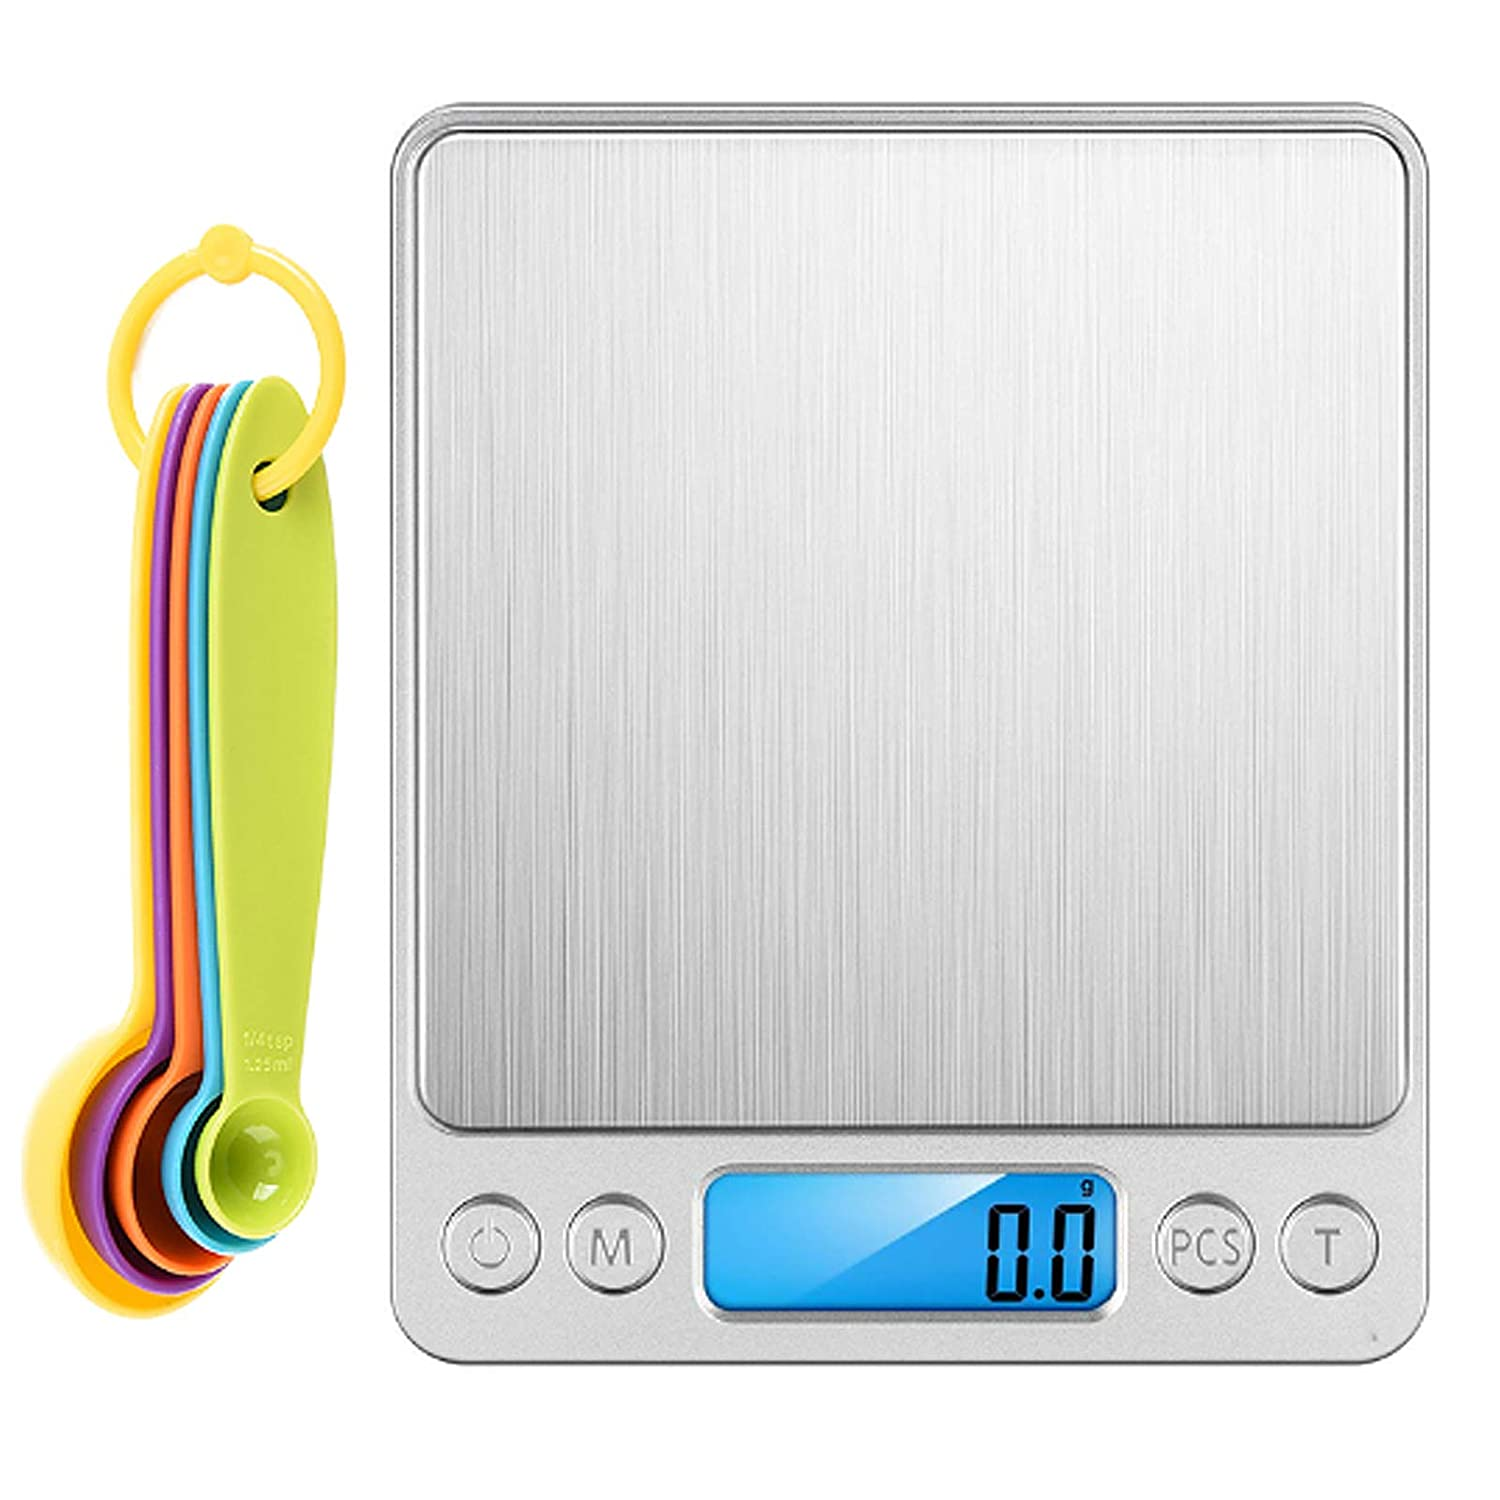 01 Gram Scale, Kitchen Scale Mini Pocket Food Scale Digital Weight Food Scale for Baking and Cooking, 6.6Lb/3kg 0.1g Accuracy with 5 Measuring Spoons, 2 Trays and Back-Lit LCD Display